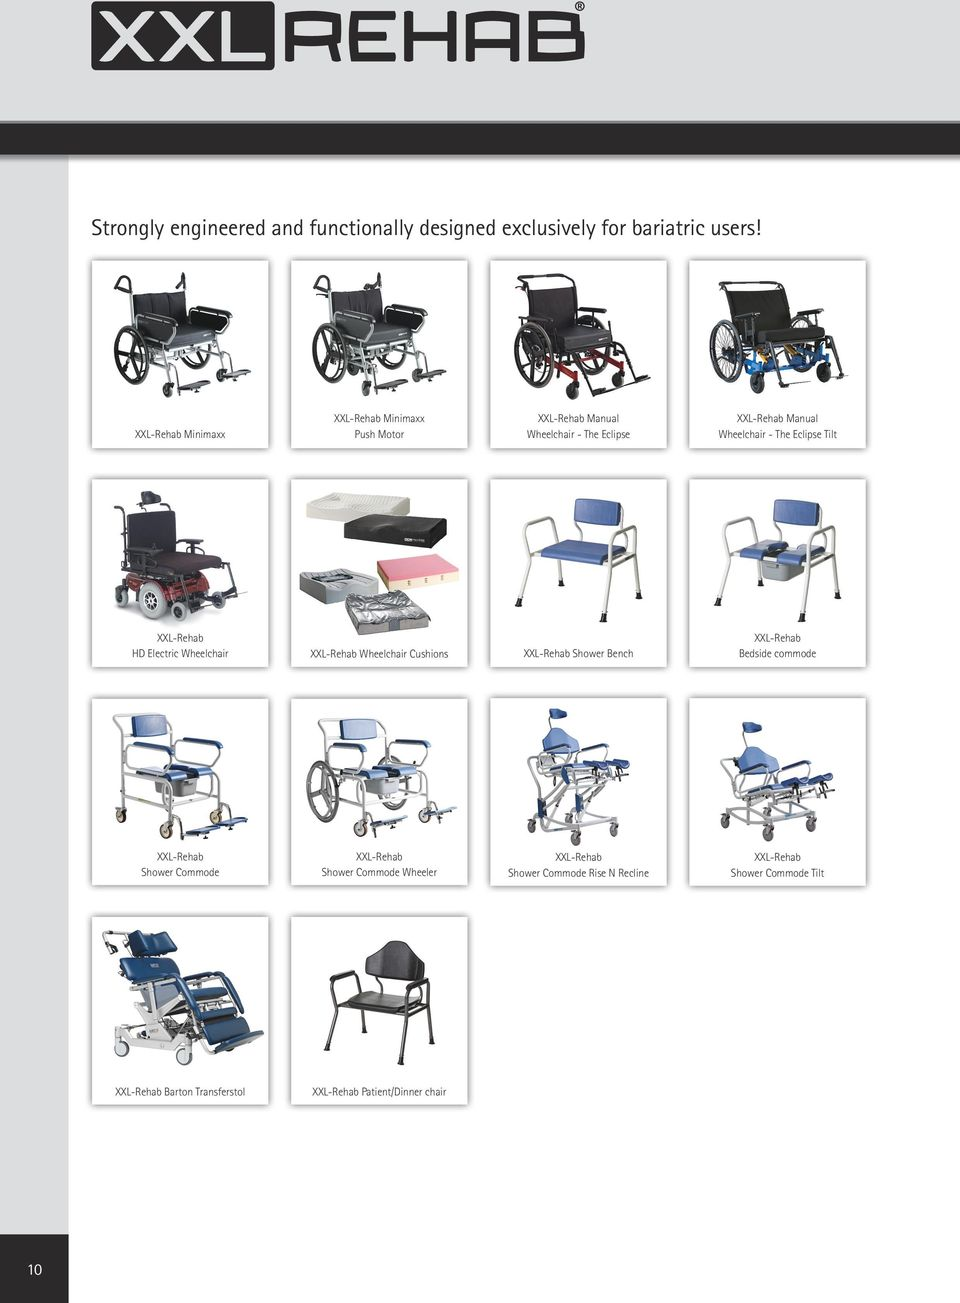 Tilt HD Electric Wheelchair Wheelchair Cushions Shower Bench Bedside commode Shower Commode